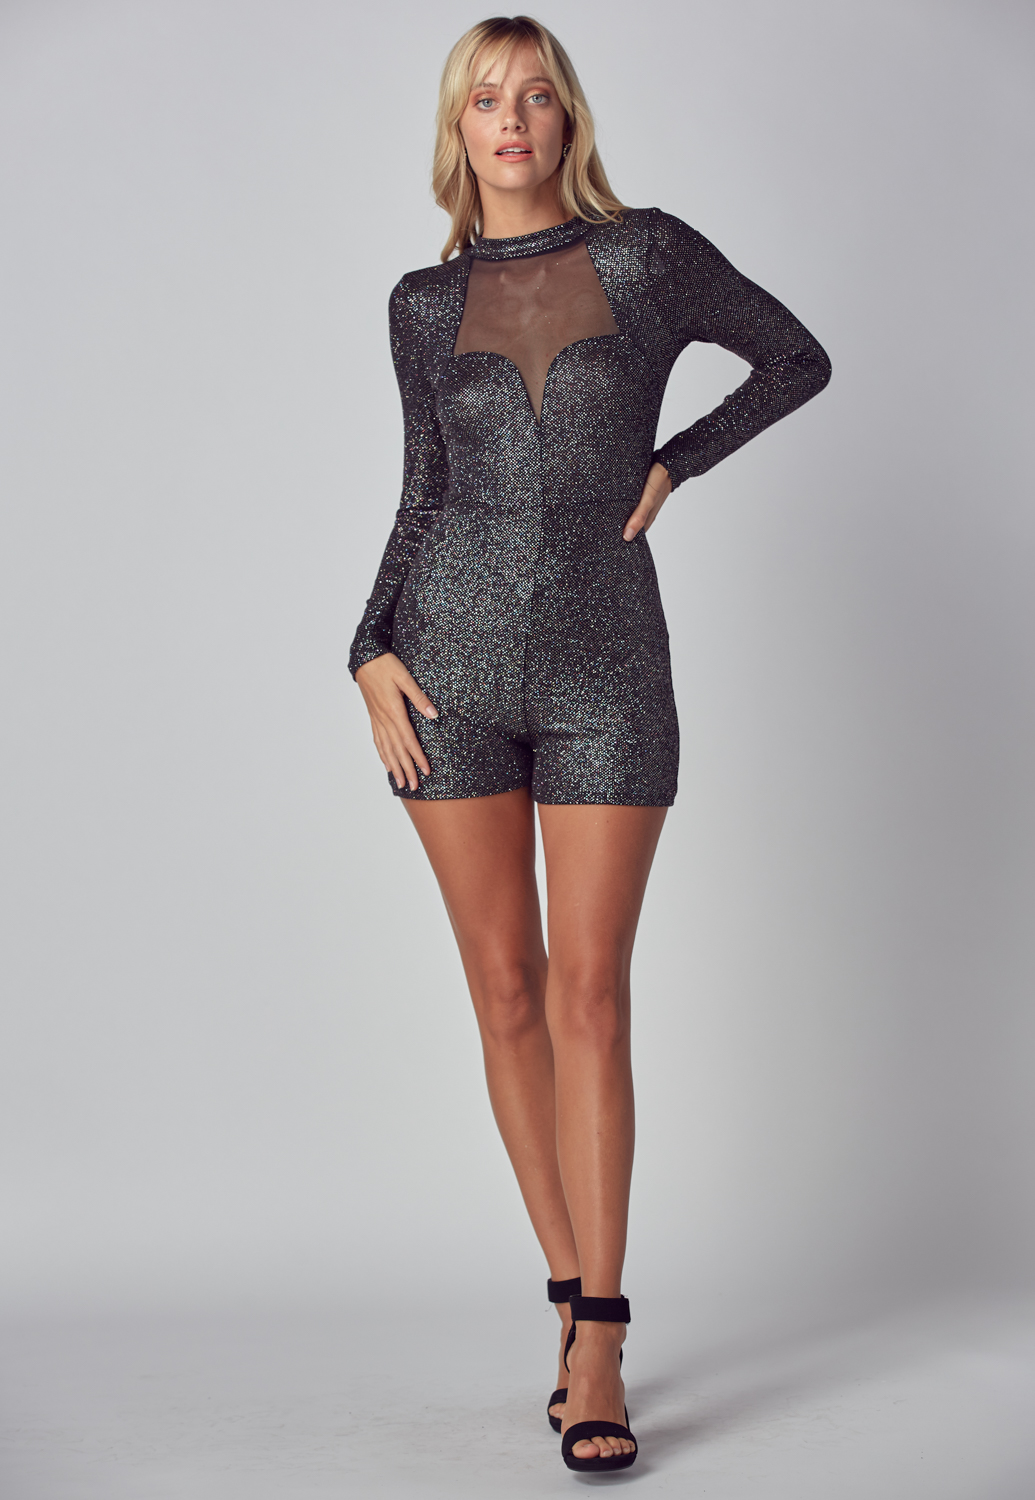 Shiny Metallic Romper